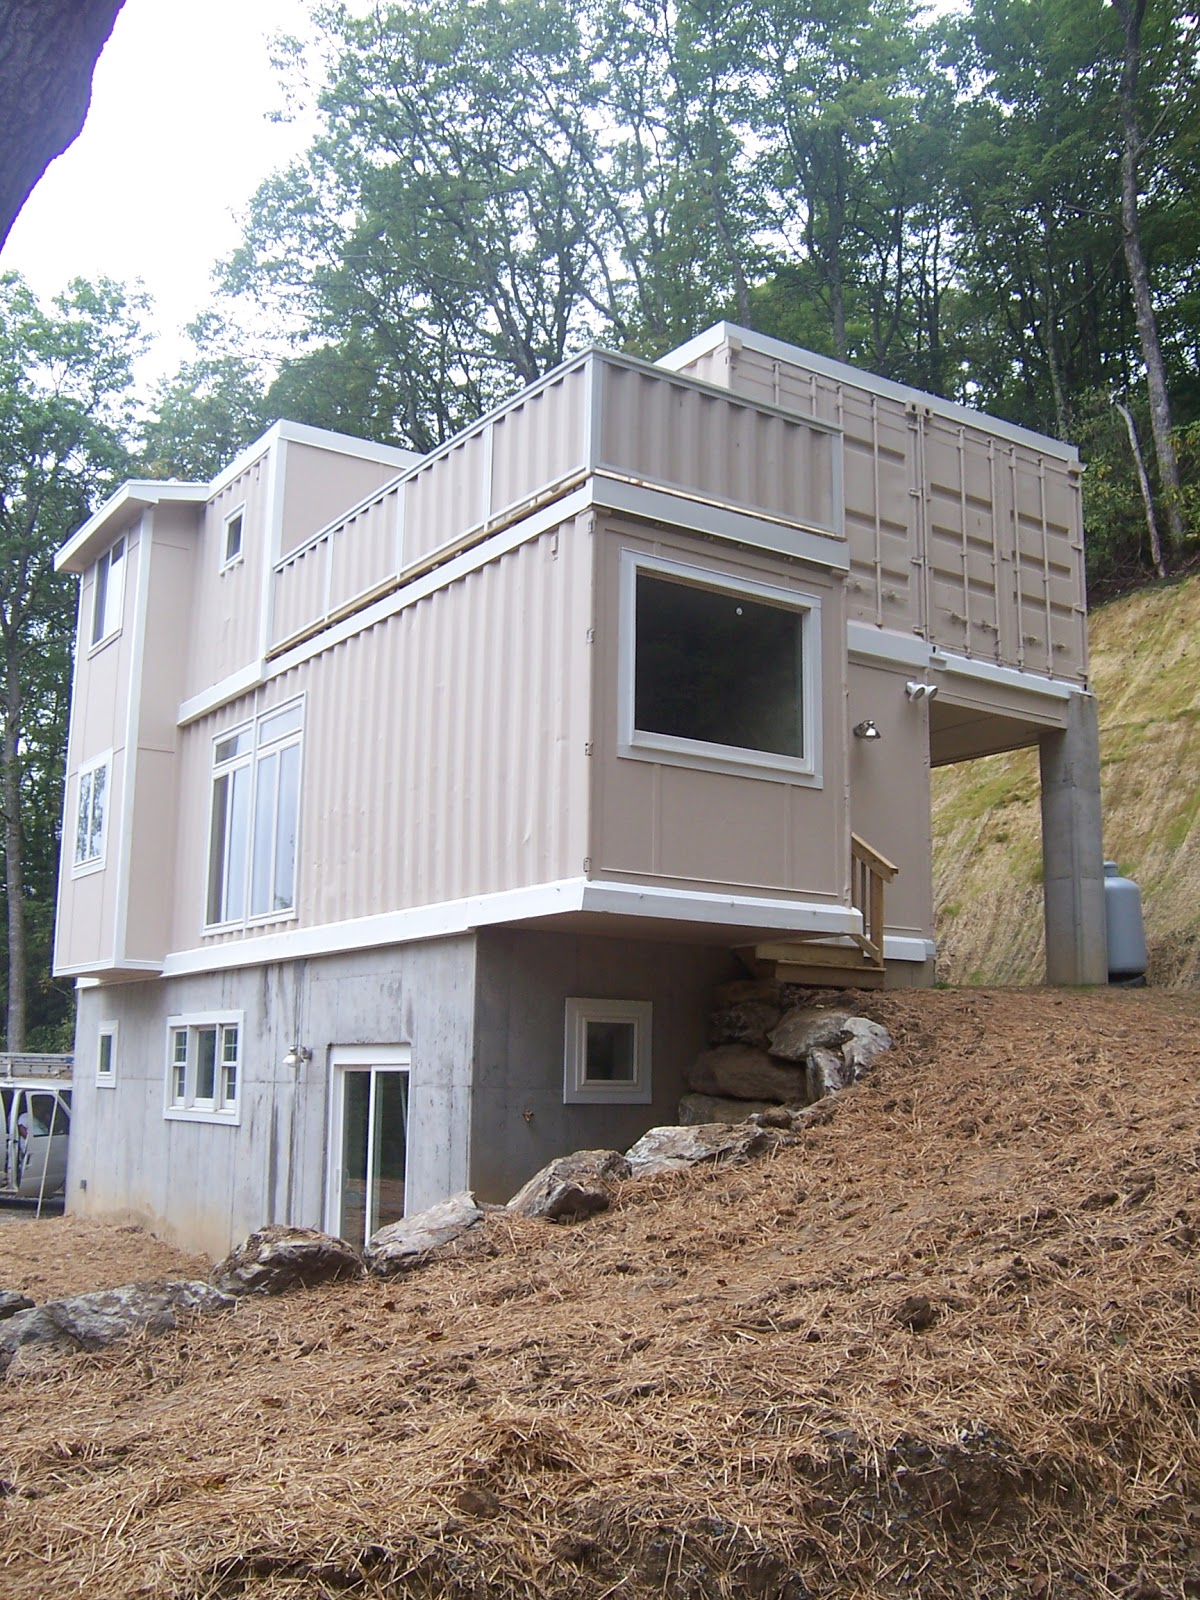 Shipping container homes high country green boxes dwellbox boone north carolina 5 - Cargo container homes ...